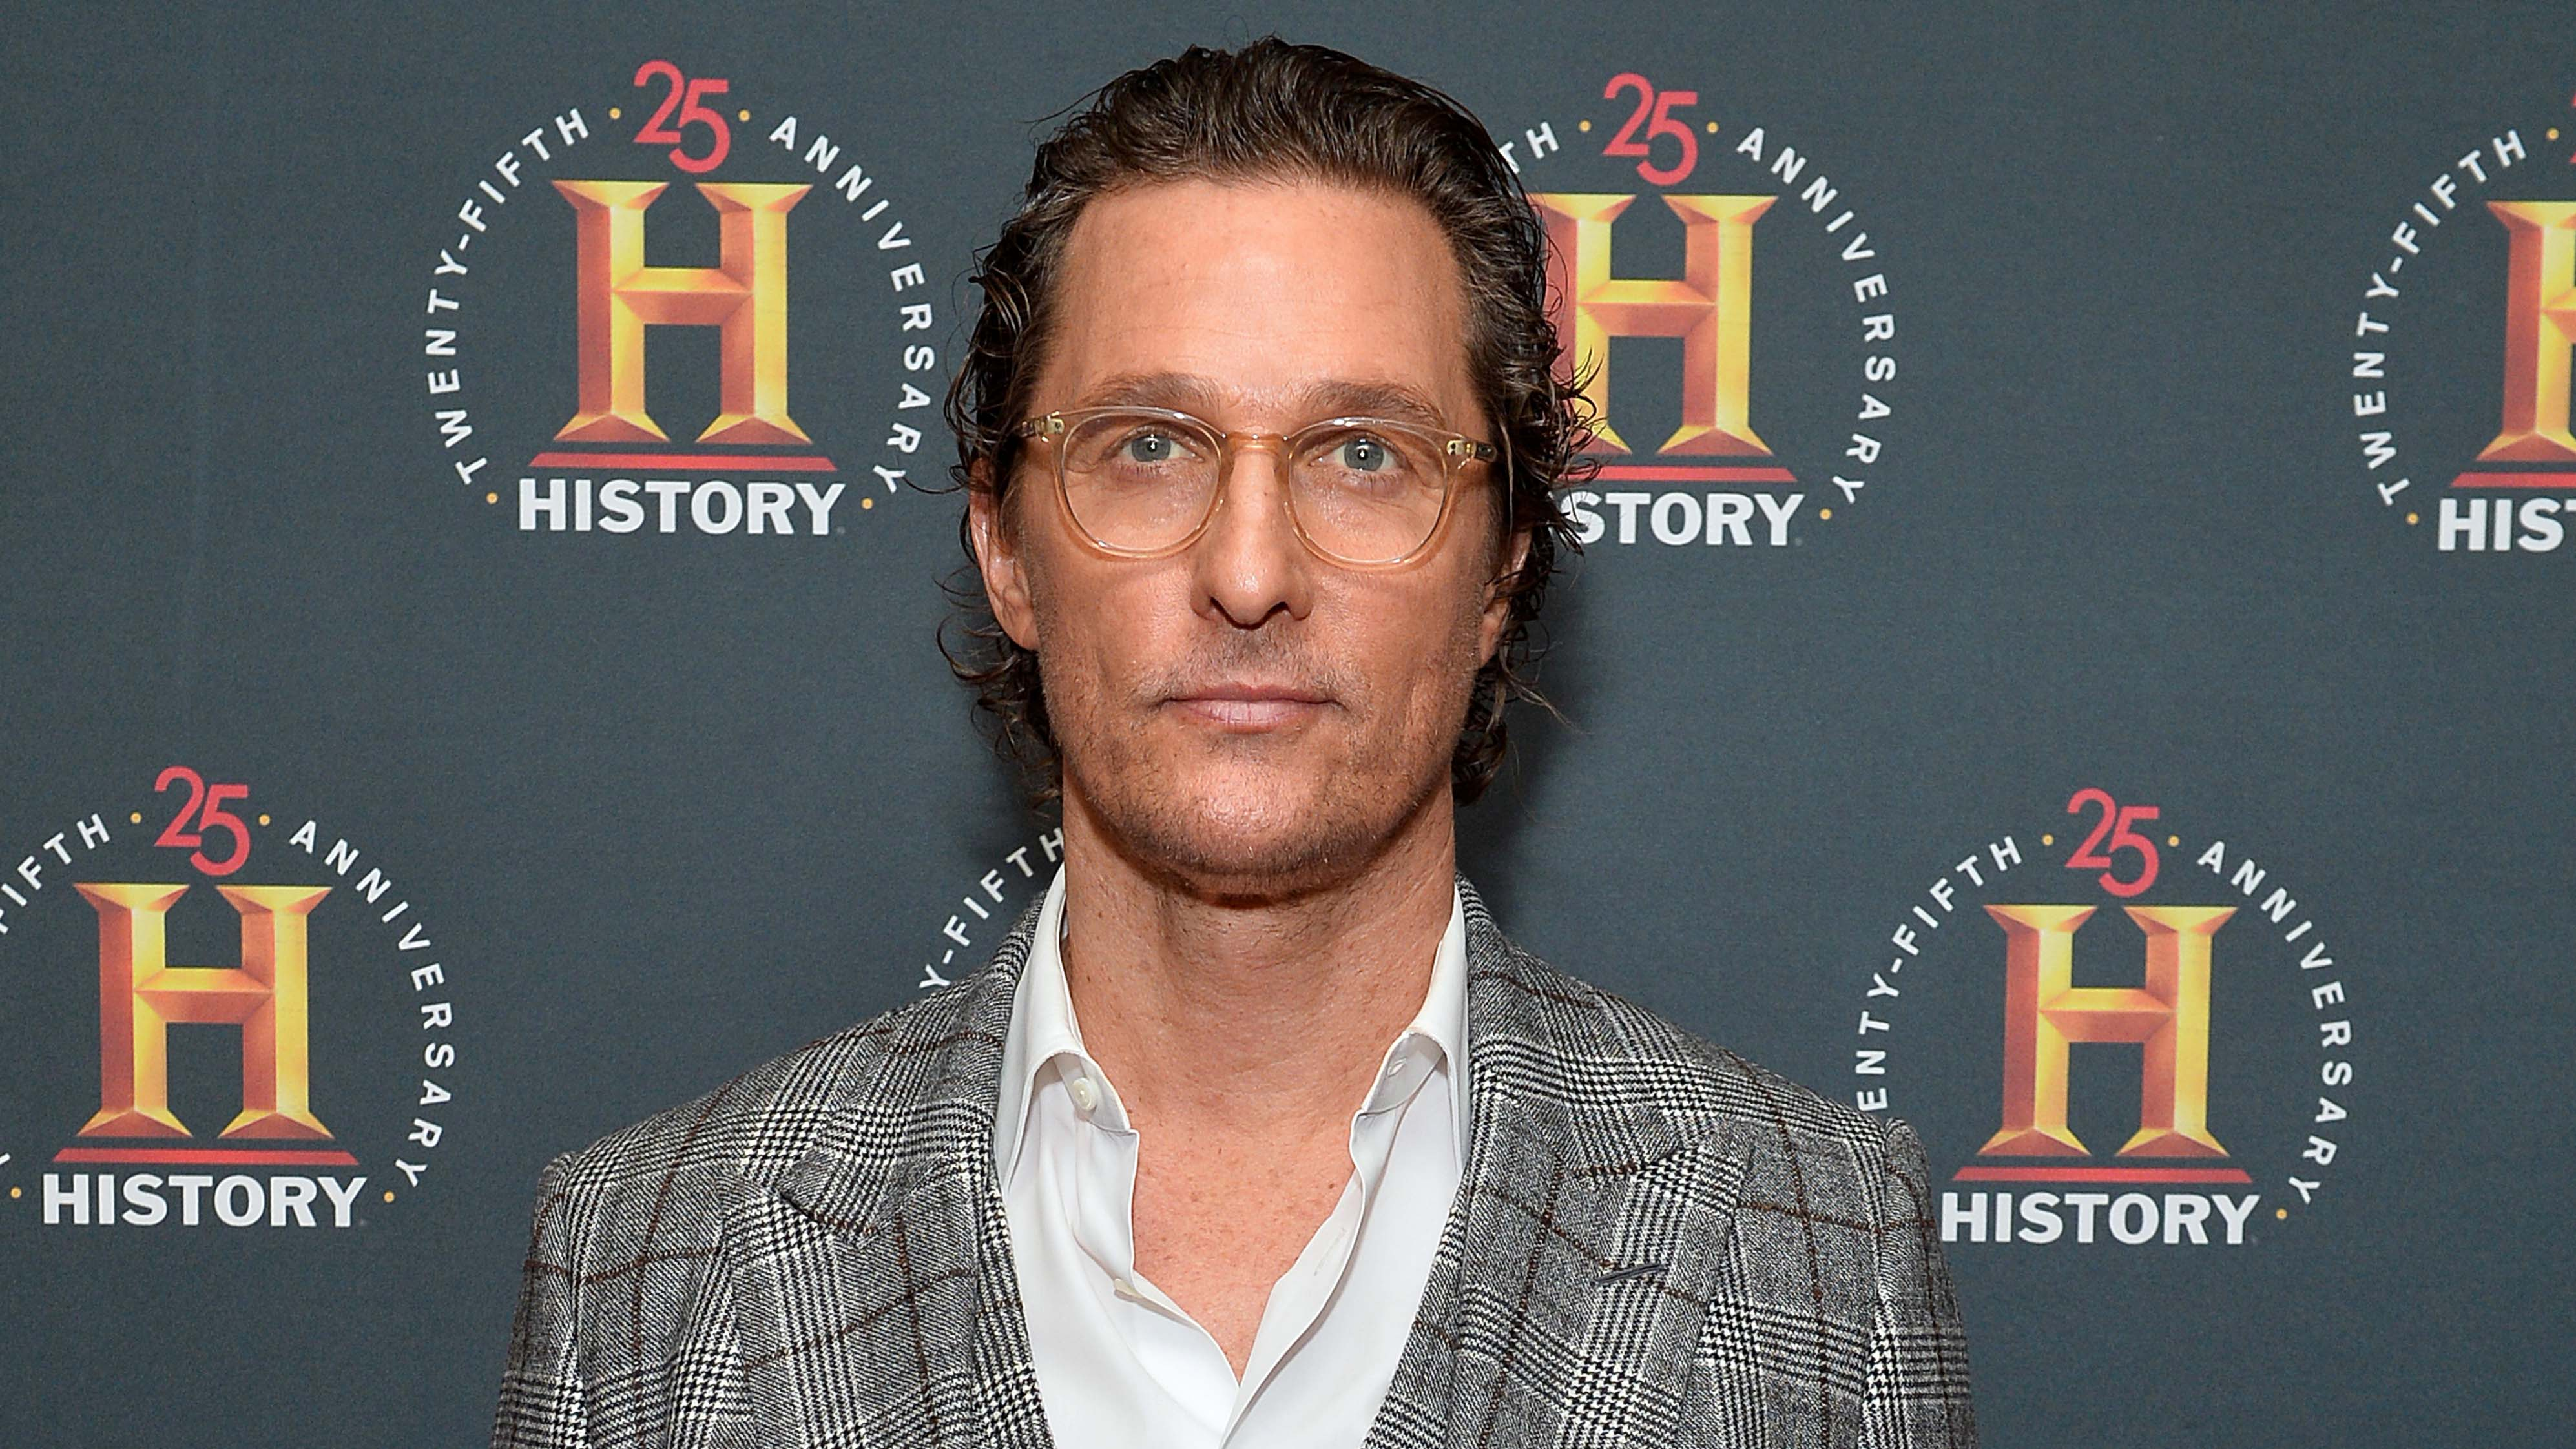 Matthew McConaughey reveals careers he was considering before choosing to stick with acting